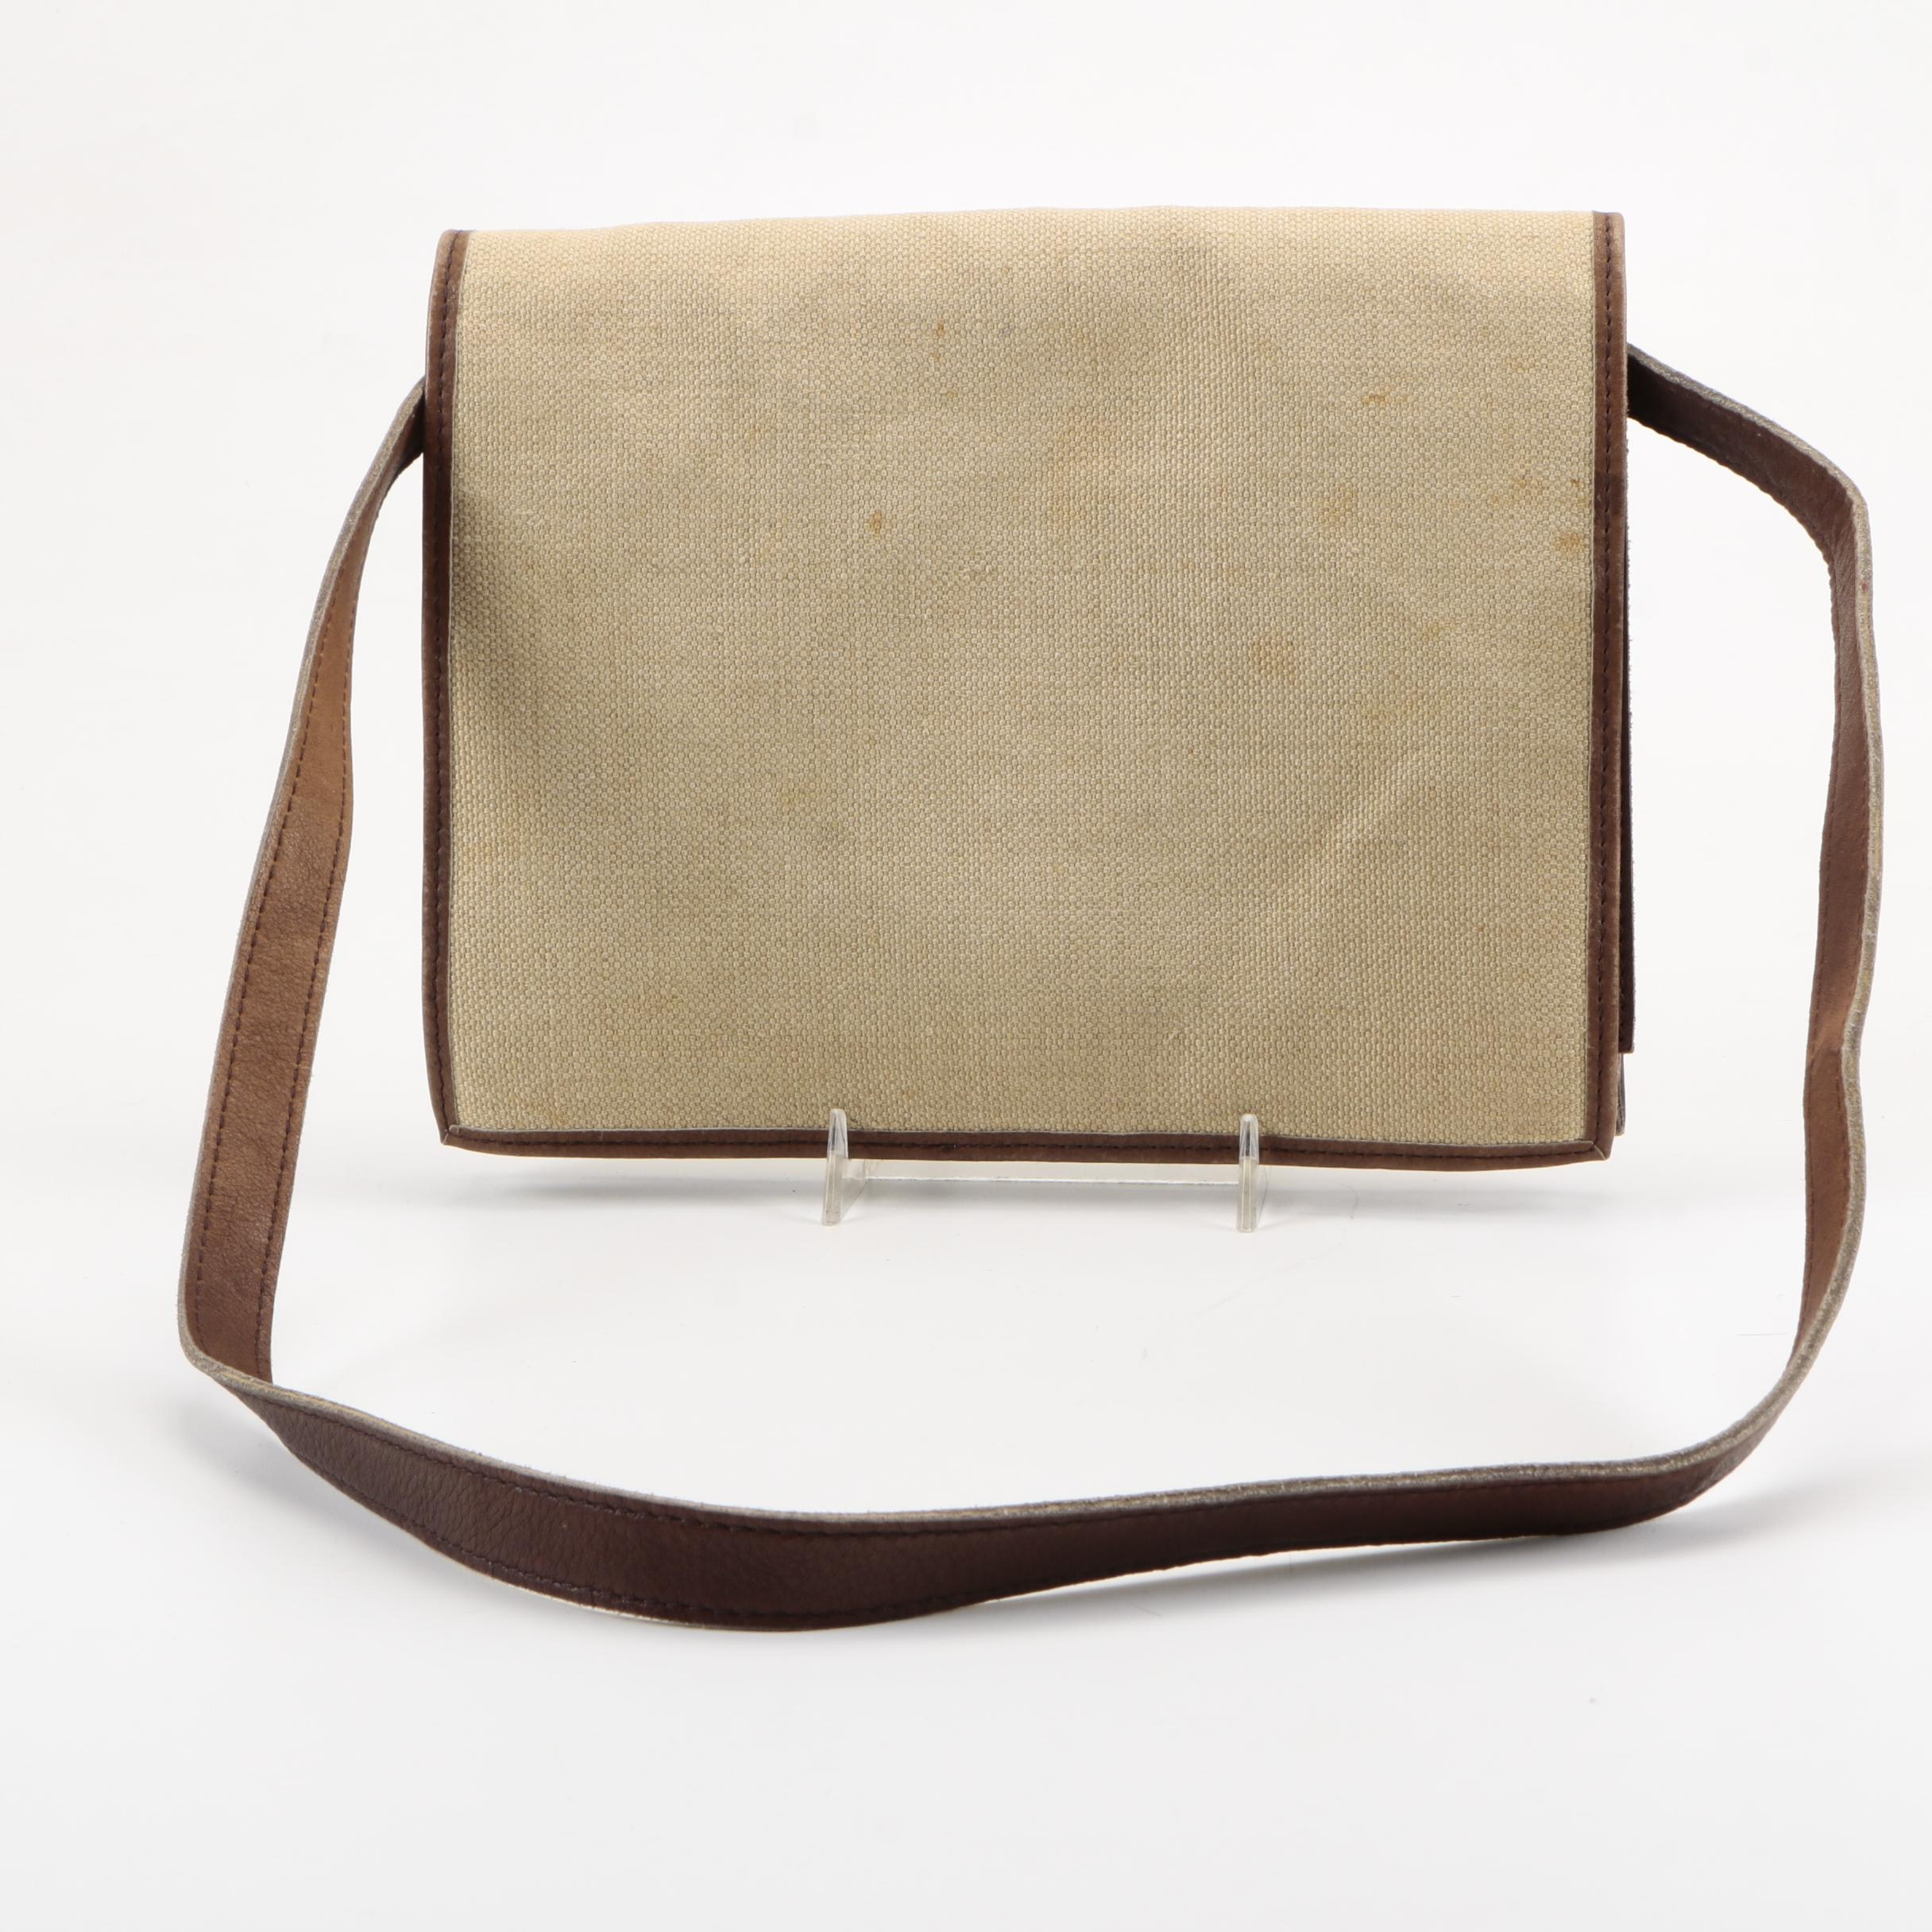 Yves Saint Laurent Brown Leather and Natural Canvas Bag